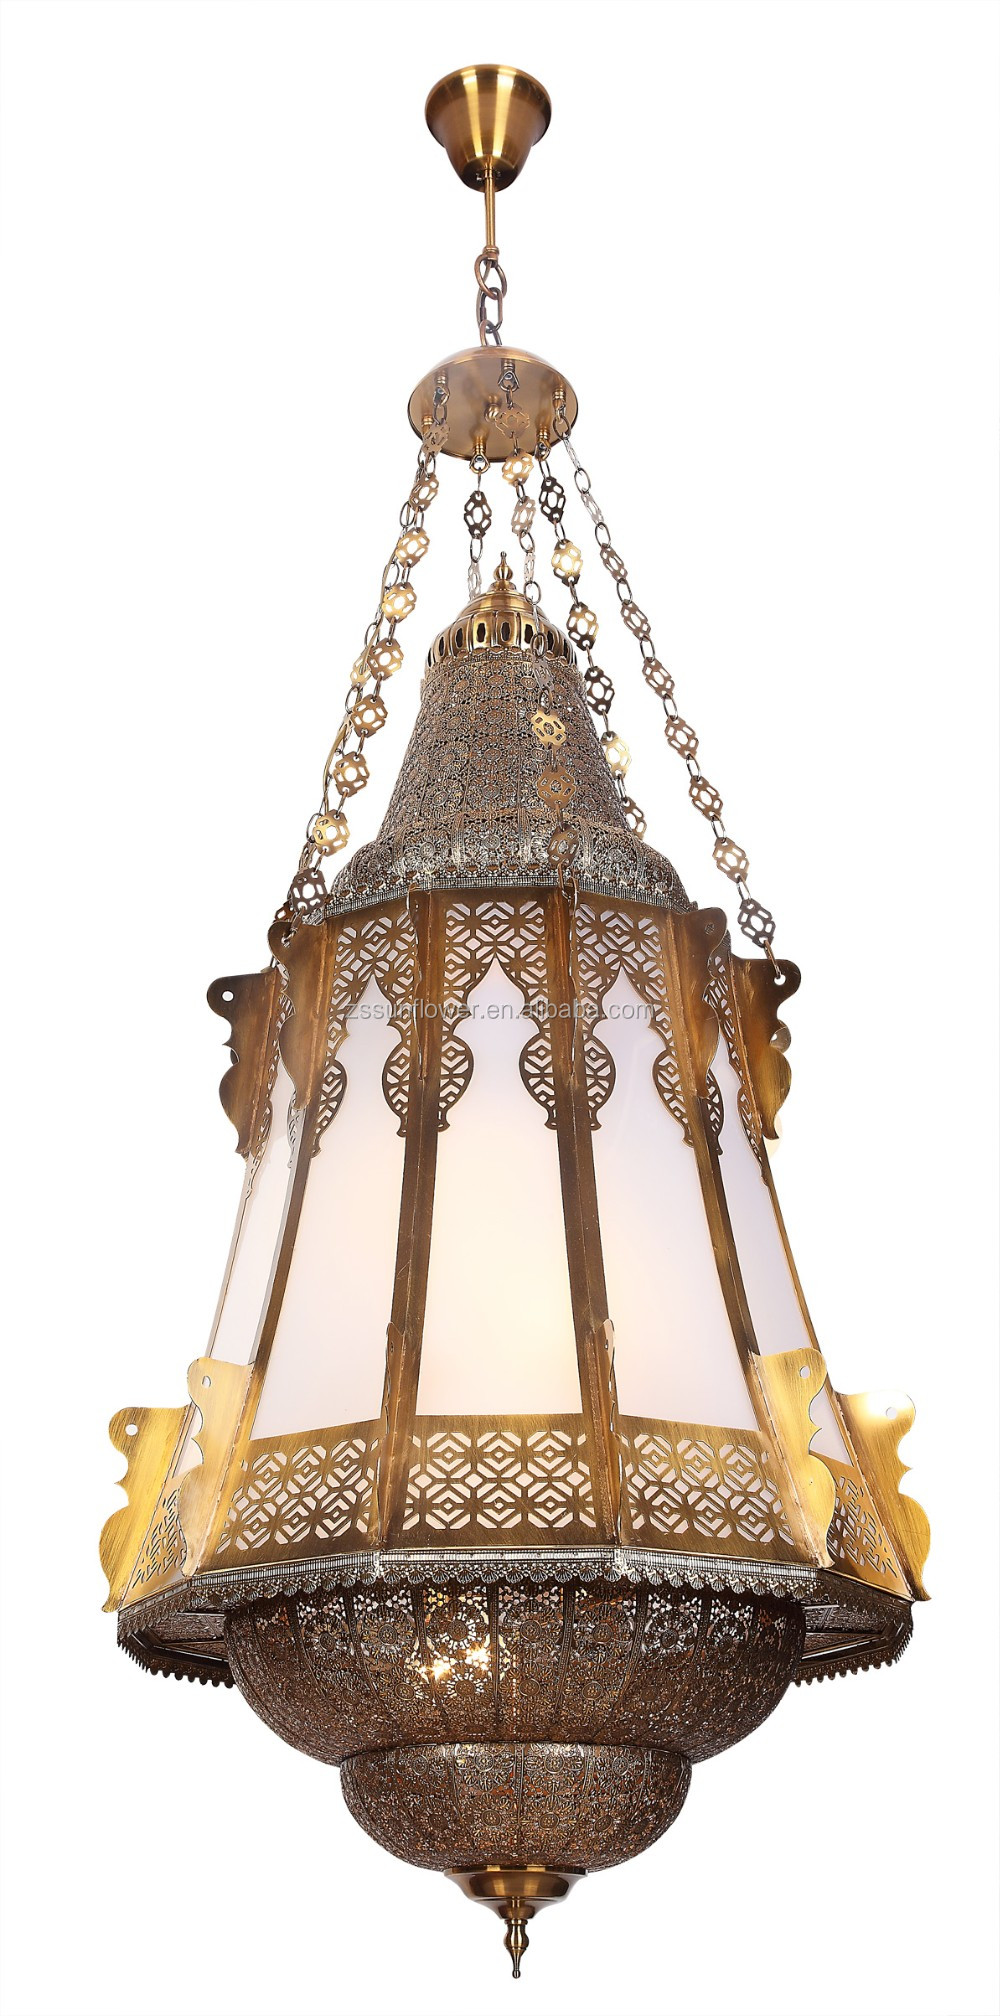 Antique brass islamic lamp antique brass islamic lamp suppliers and antique brass islamic lamp antique brass islamic lamp suppliers and manufacturers at alibaba arubaitofo Choice Image